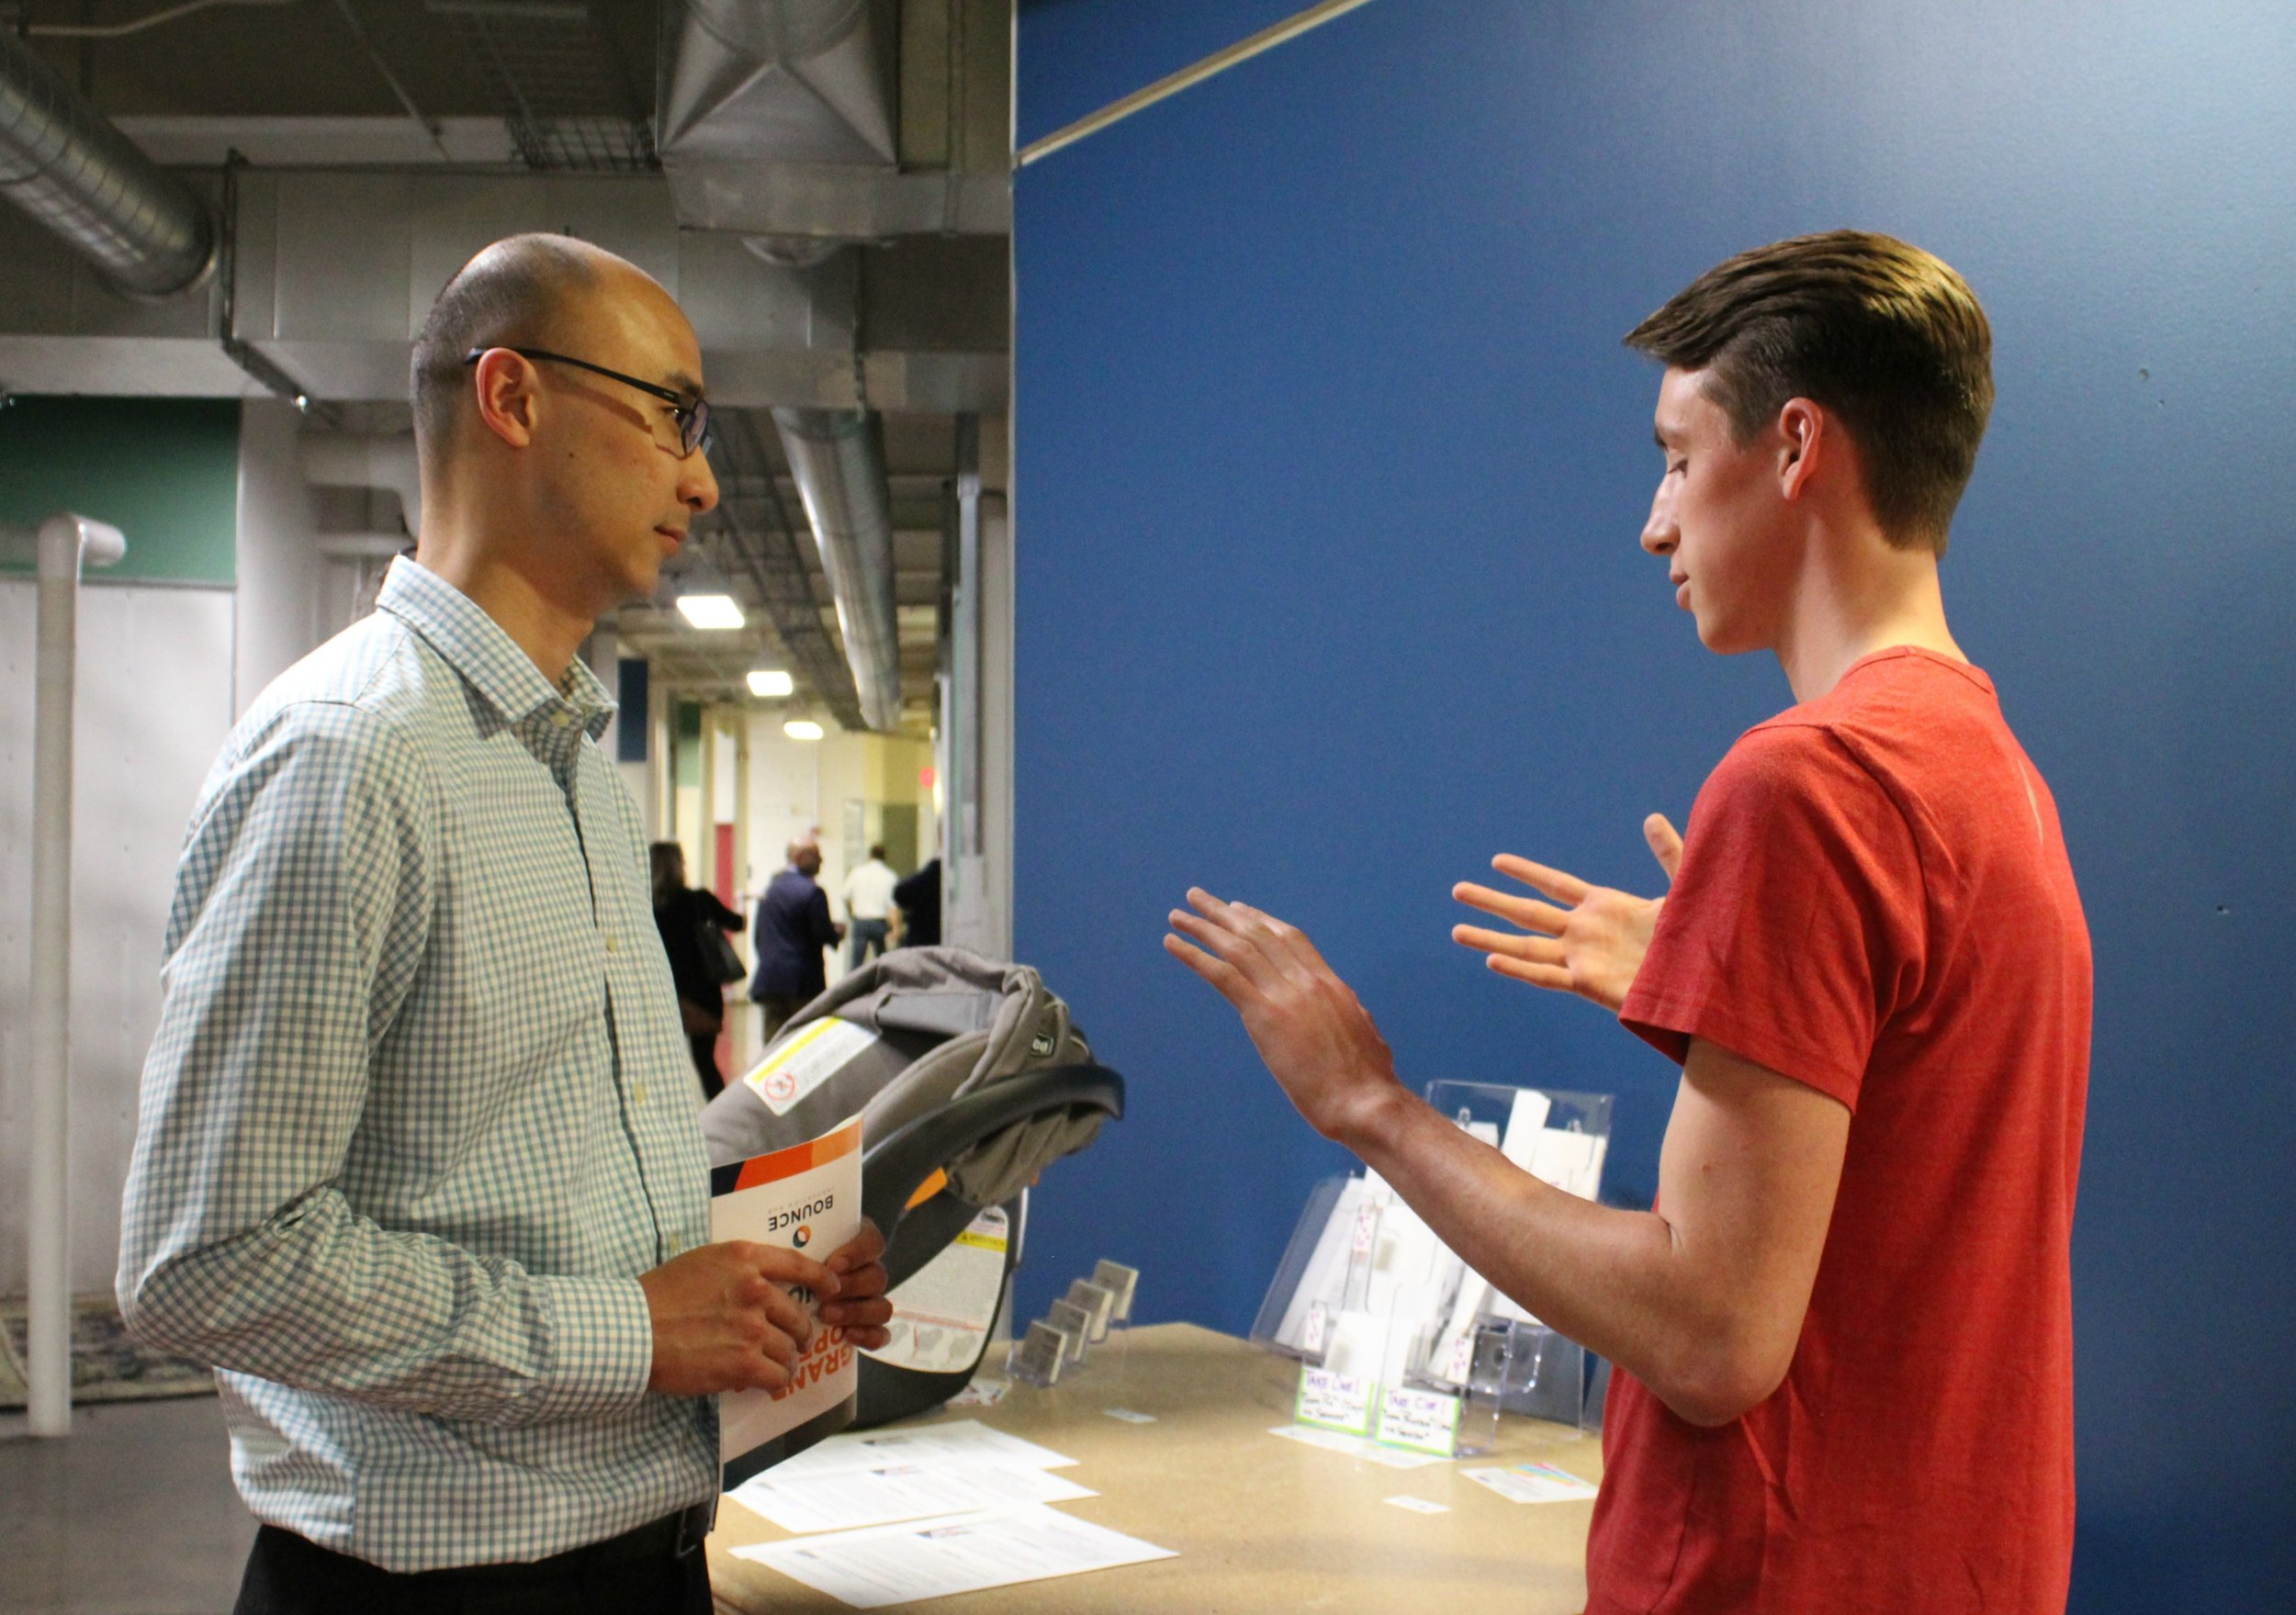 Joe explains the science behind our dry adhesive material to a visitor during the open house.